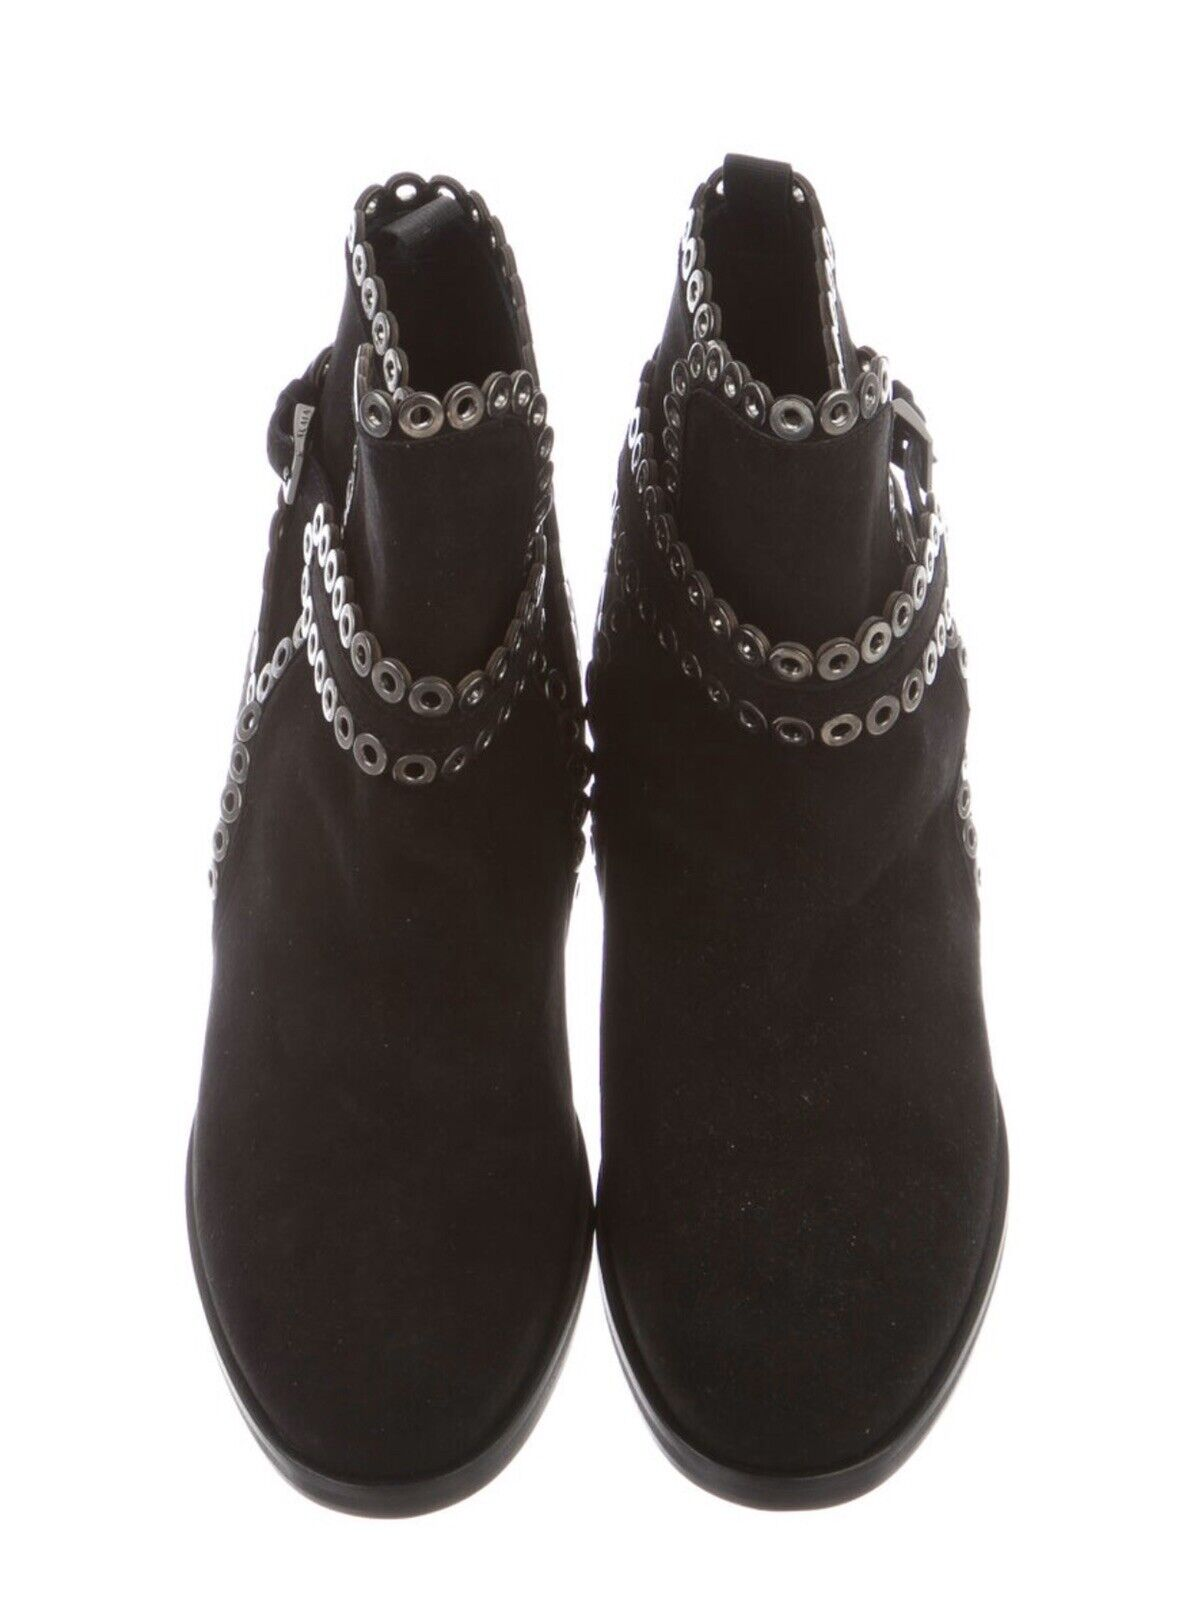 AZZEDINE ALAIA Black Suede Grommet Ankle Boots Si… - image 3